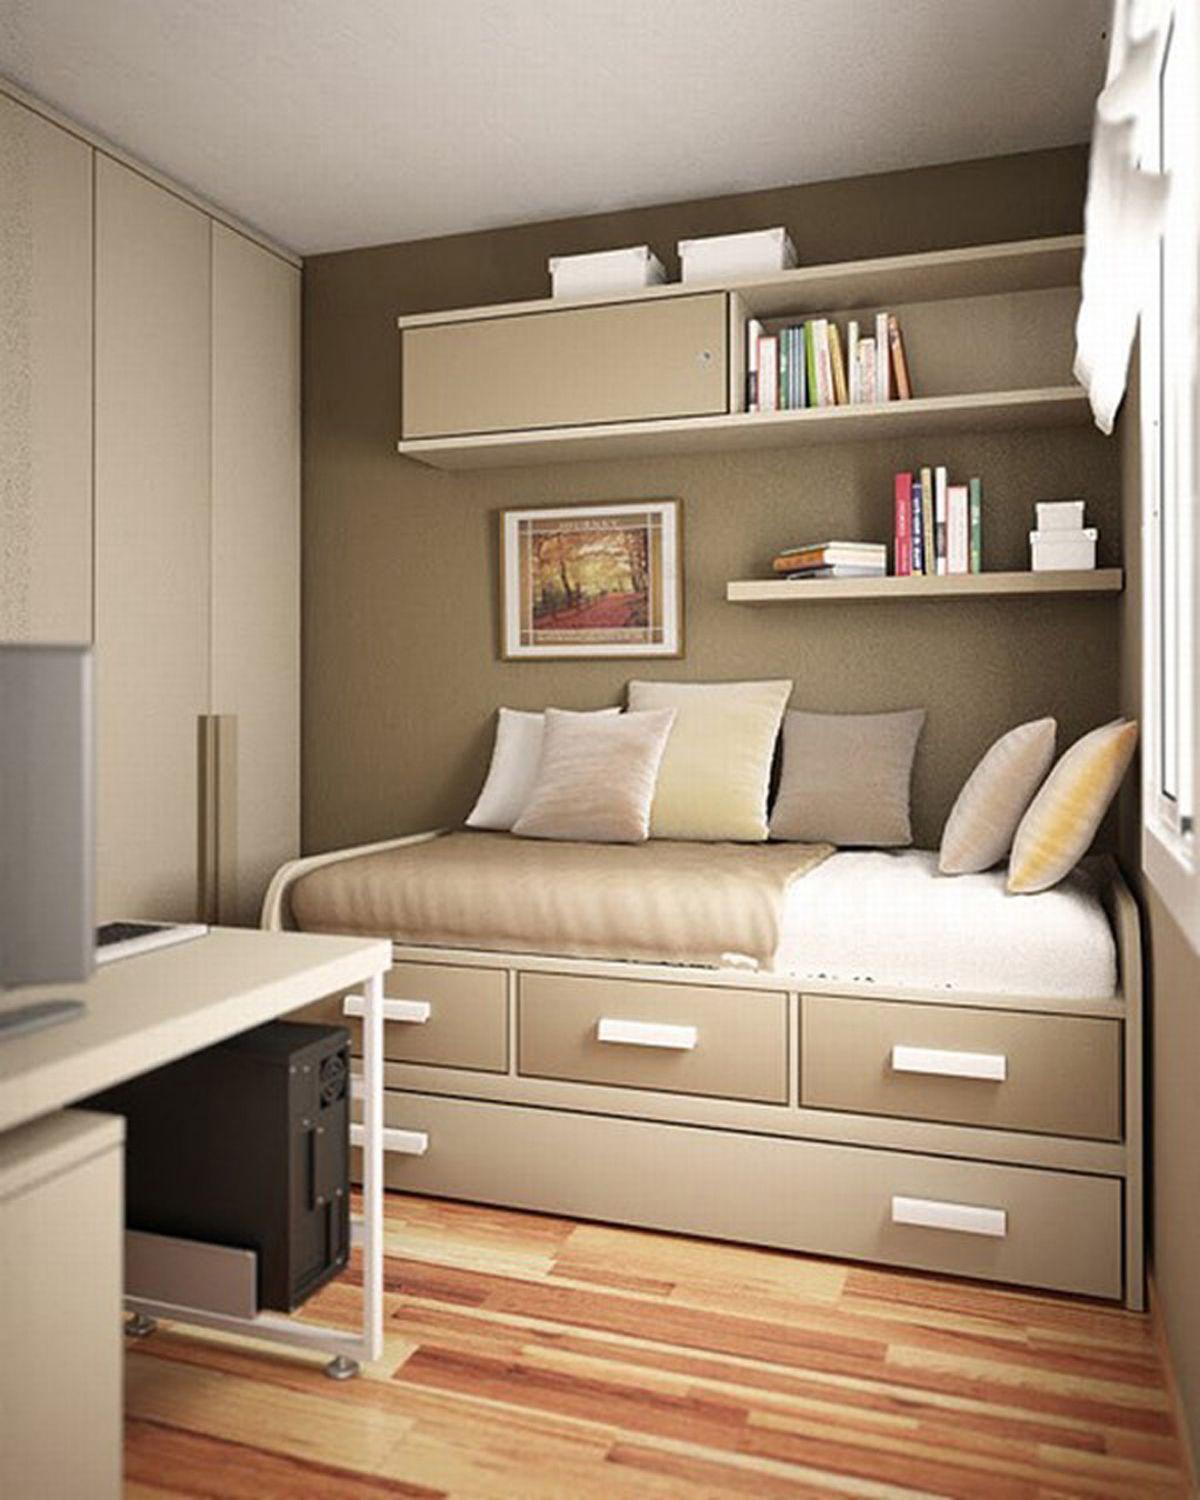 Fitted Bedrooms Small Space. 1000 Images About Cabinet Designs For Small  Spaces On Pinterest Bedroom